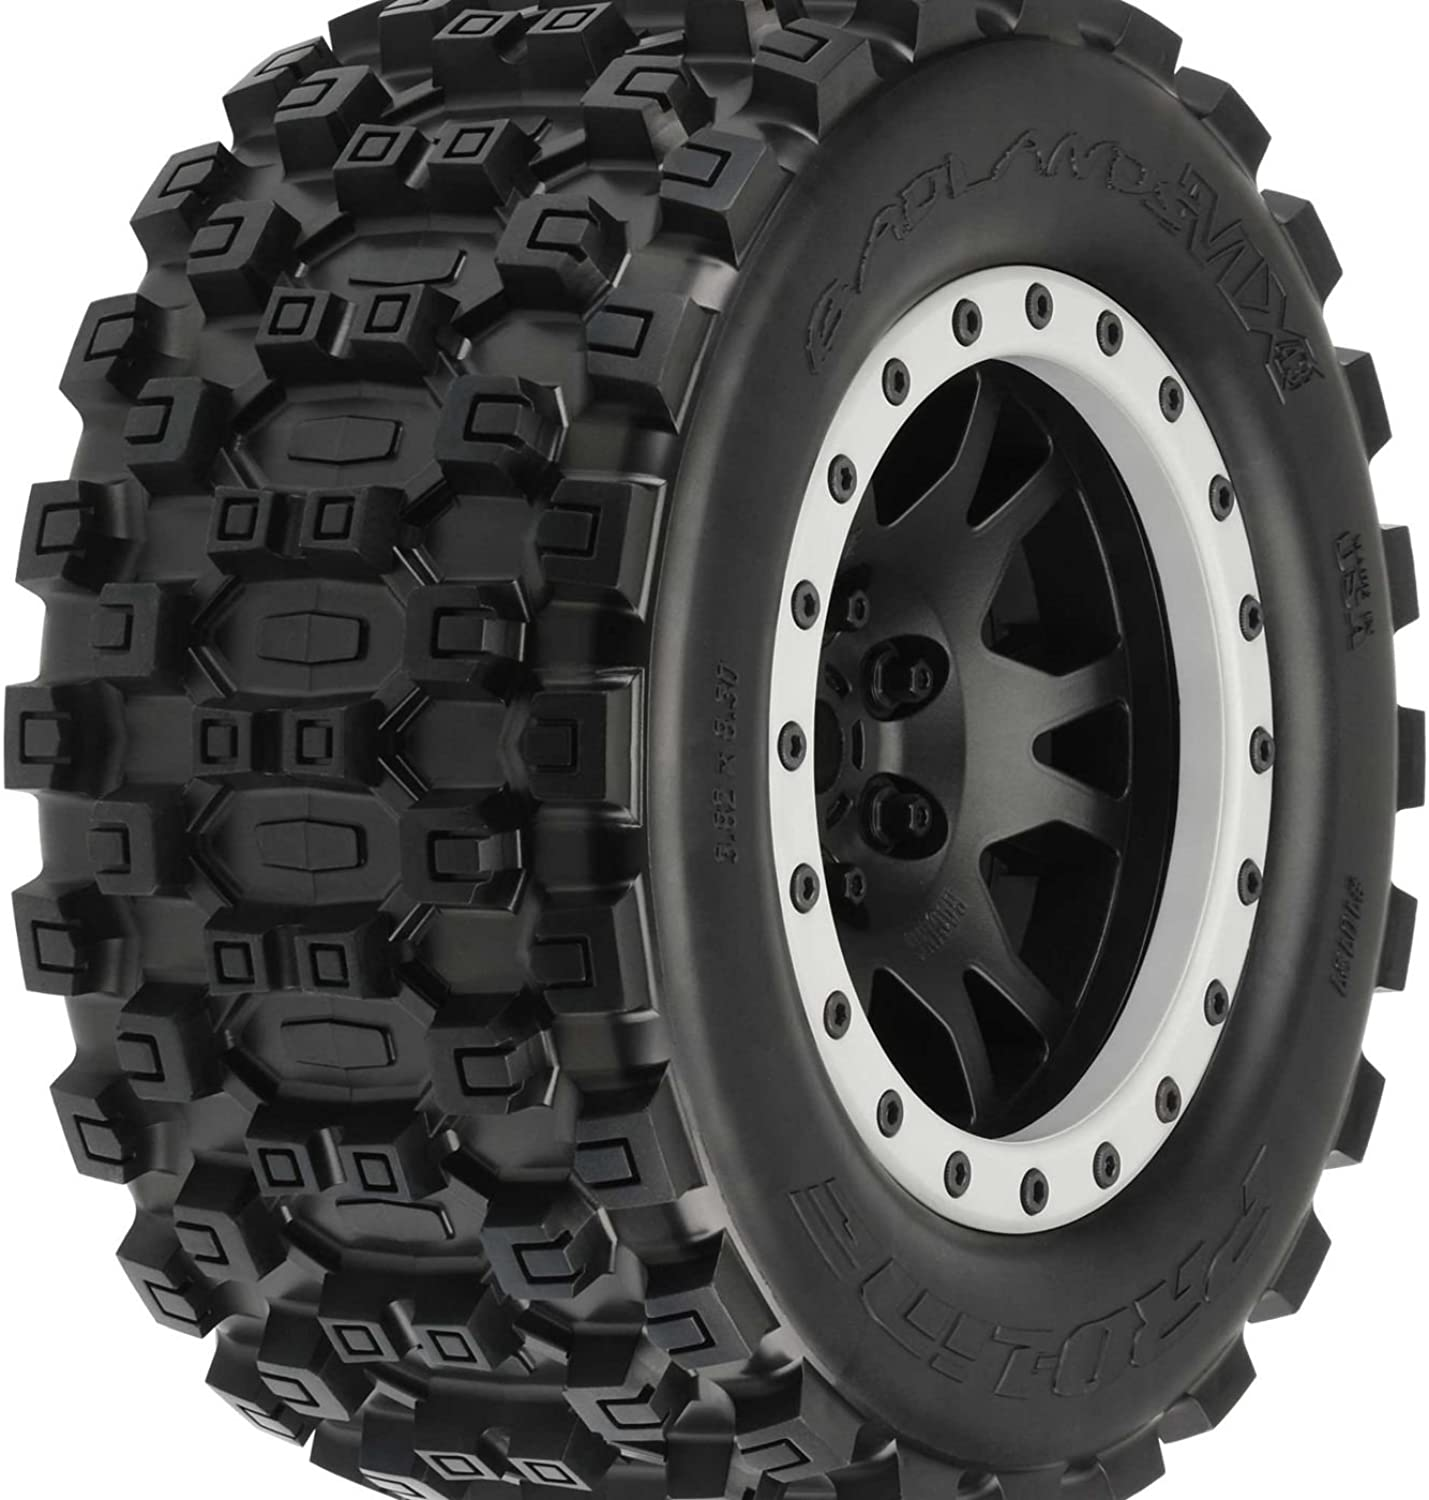 marcas de moda PROLINE BADLANDS MX43 MX43 MX43 PRO-LOC TYRES MOUNTED FOR XMAXX (F R)  hasta 60% de descuento